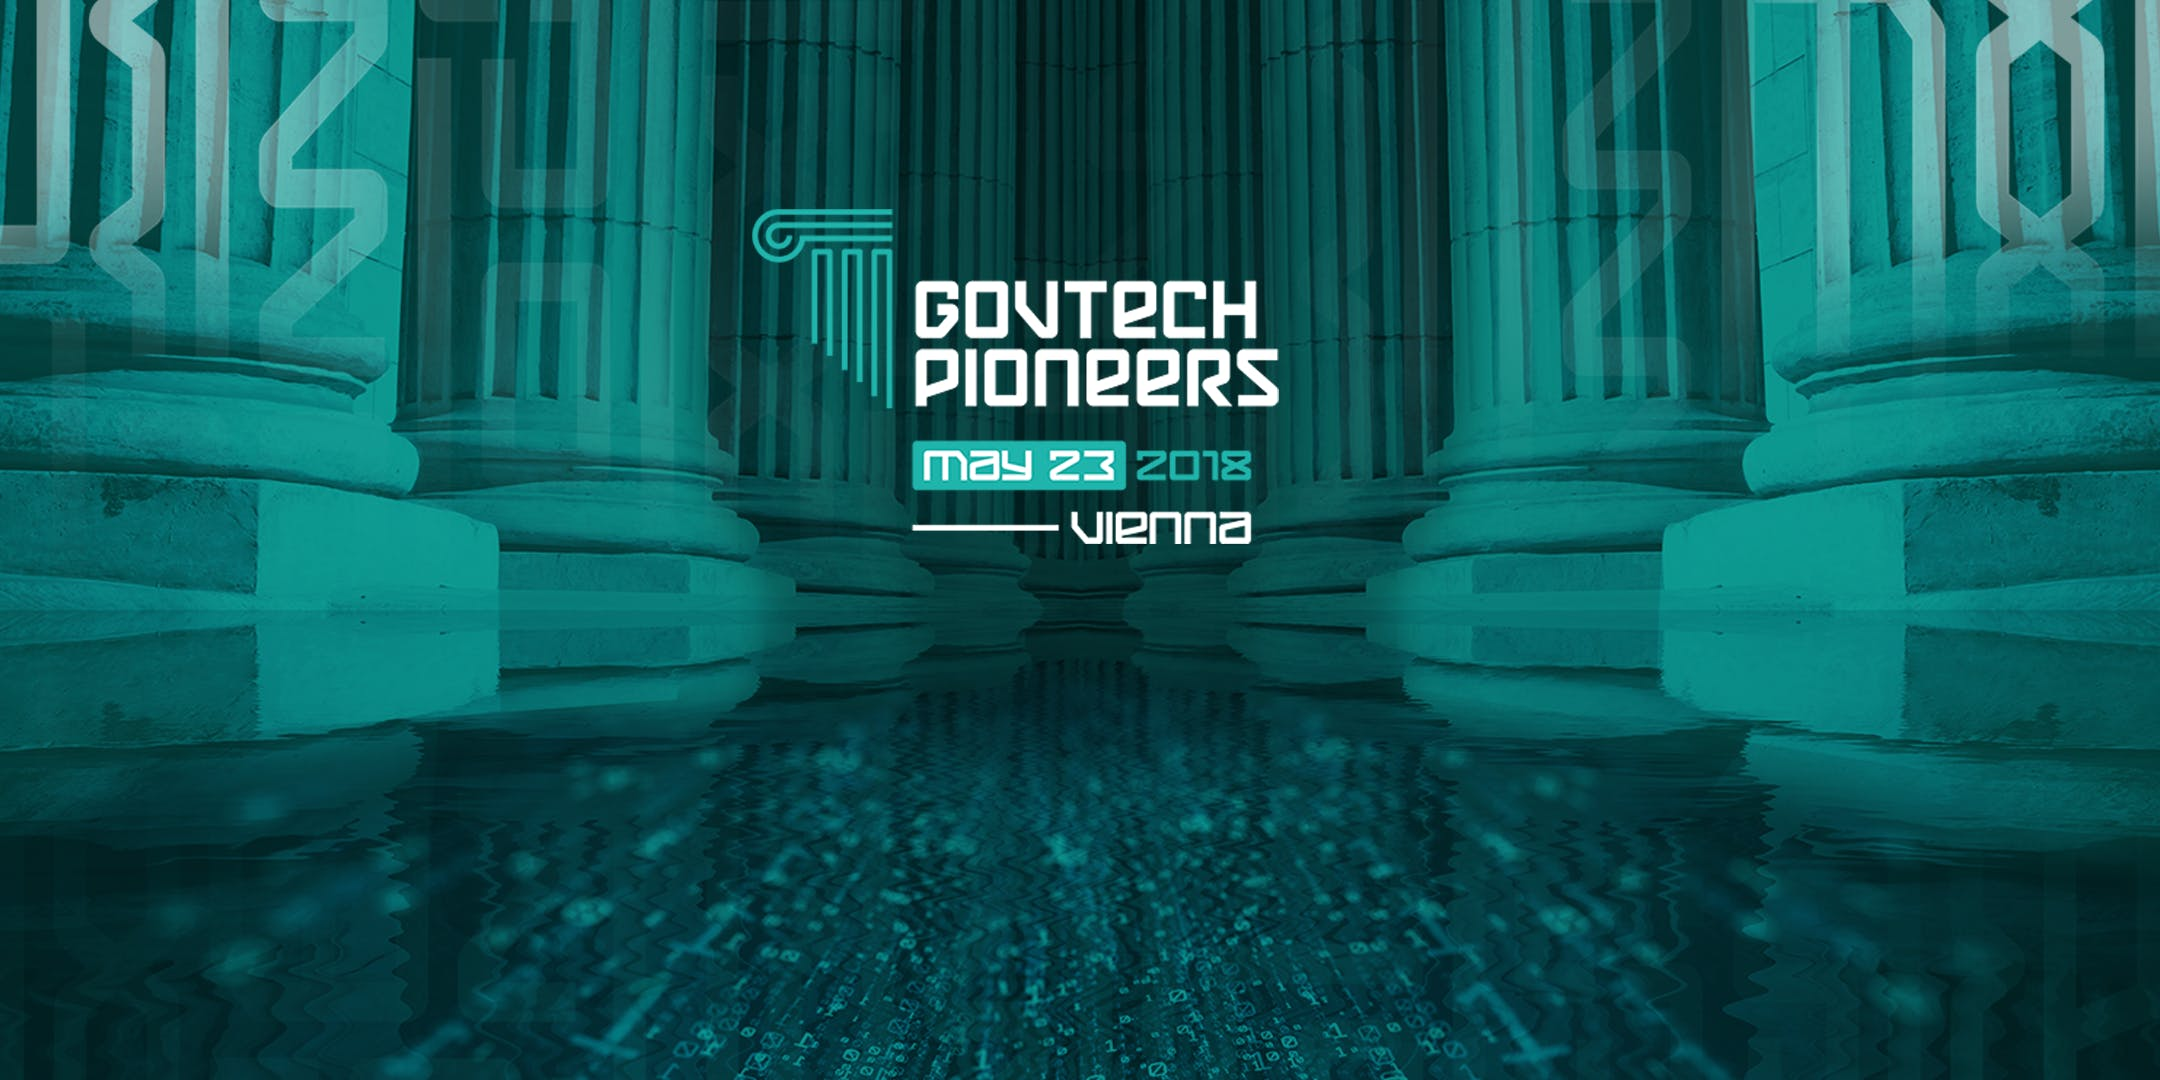 GovTech.Pioneers